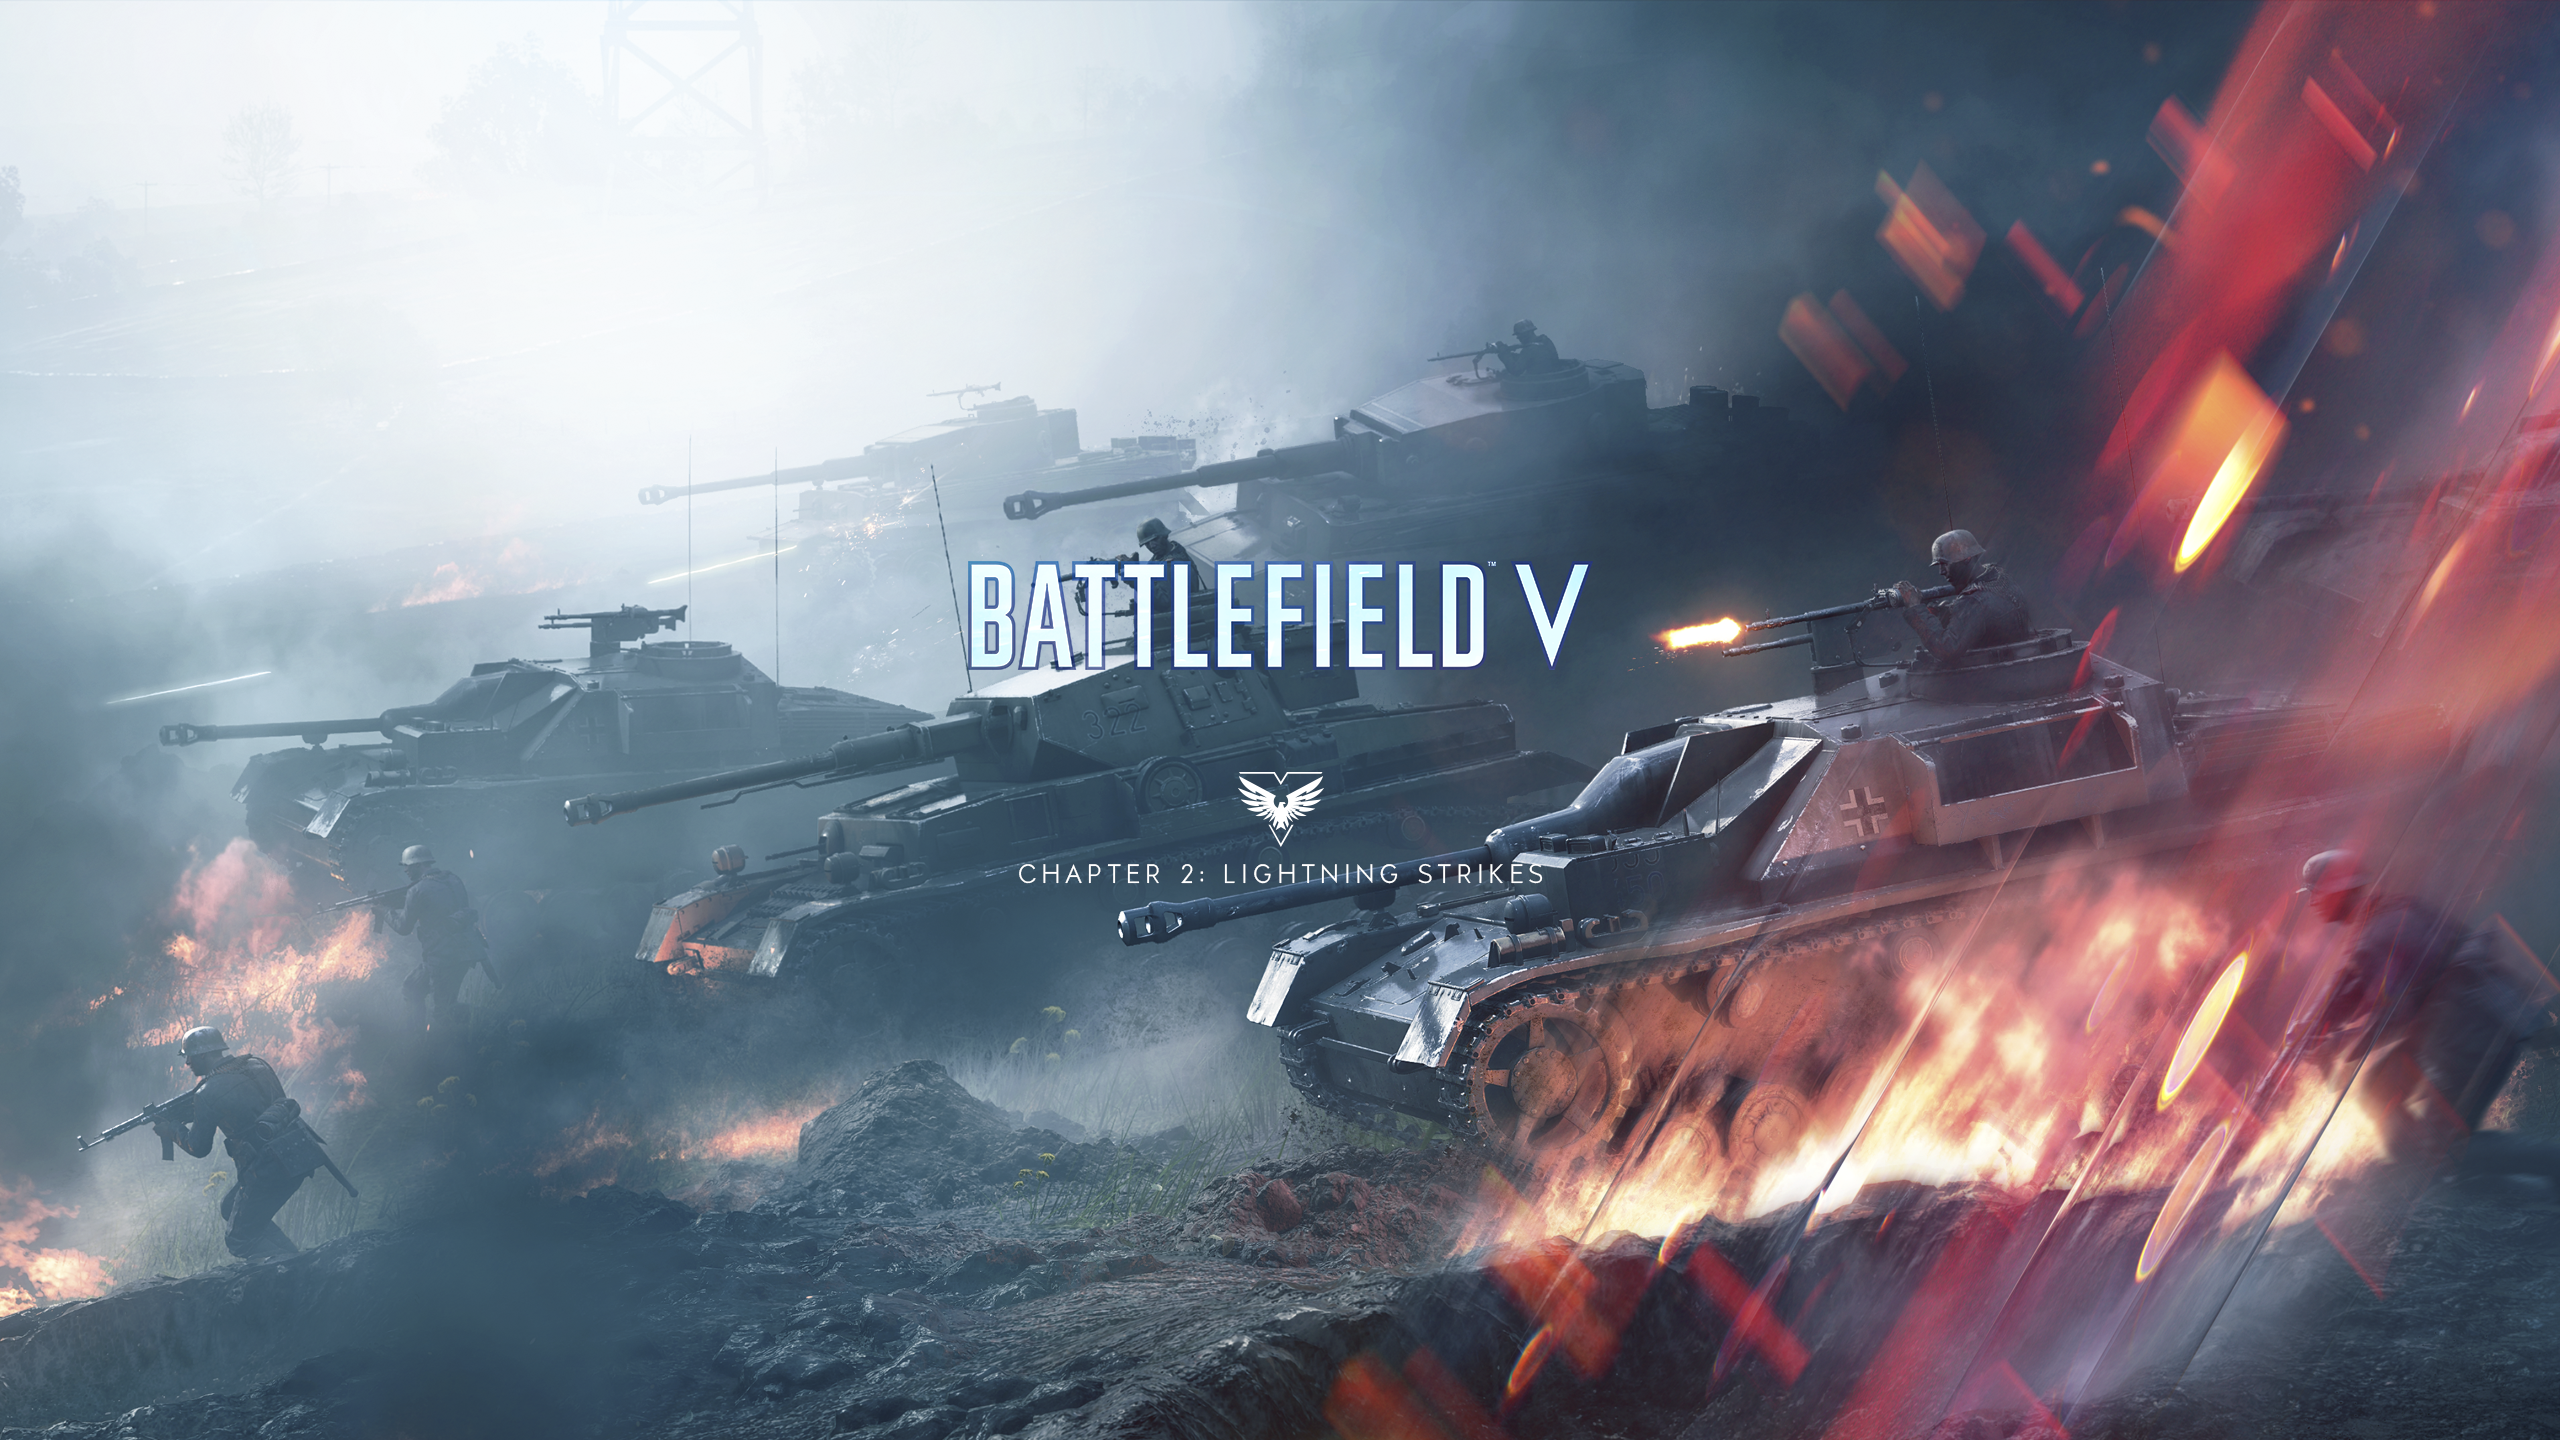 Battlefield V Tides of War Lightning Strikes Wallpaper with Logo